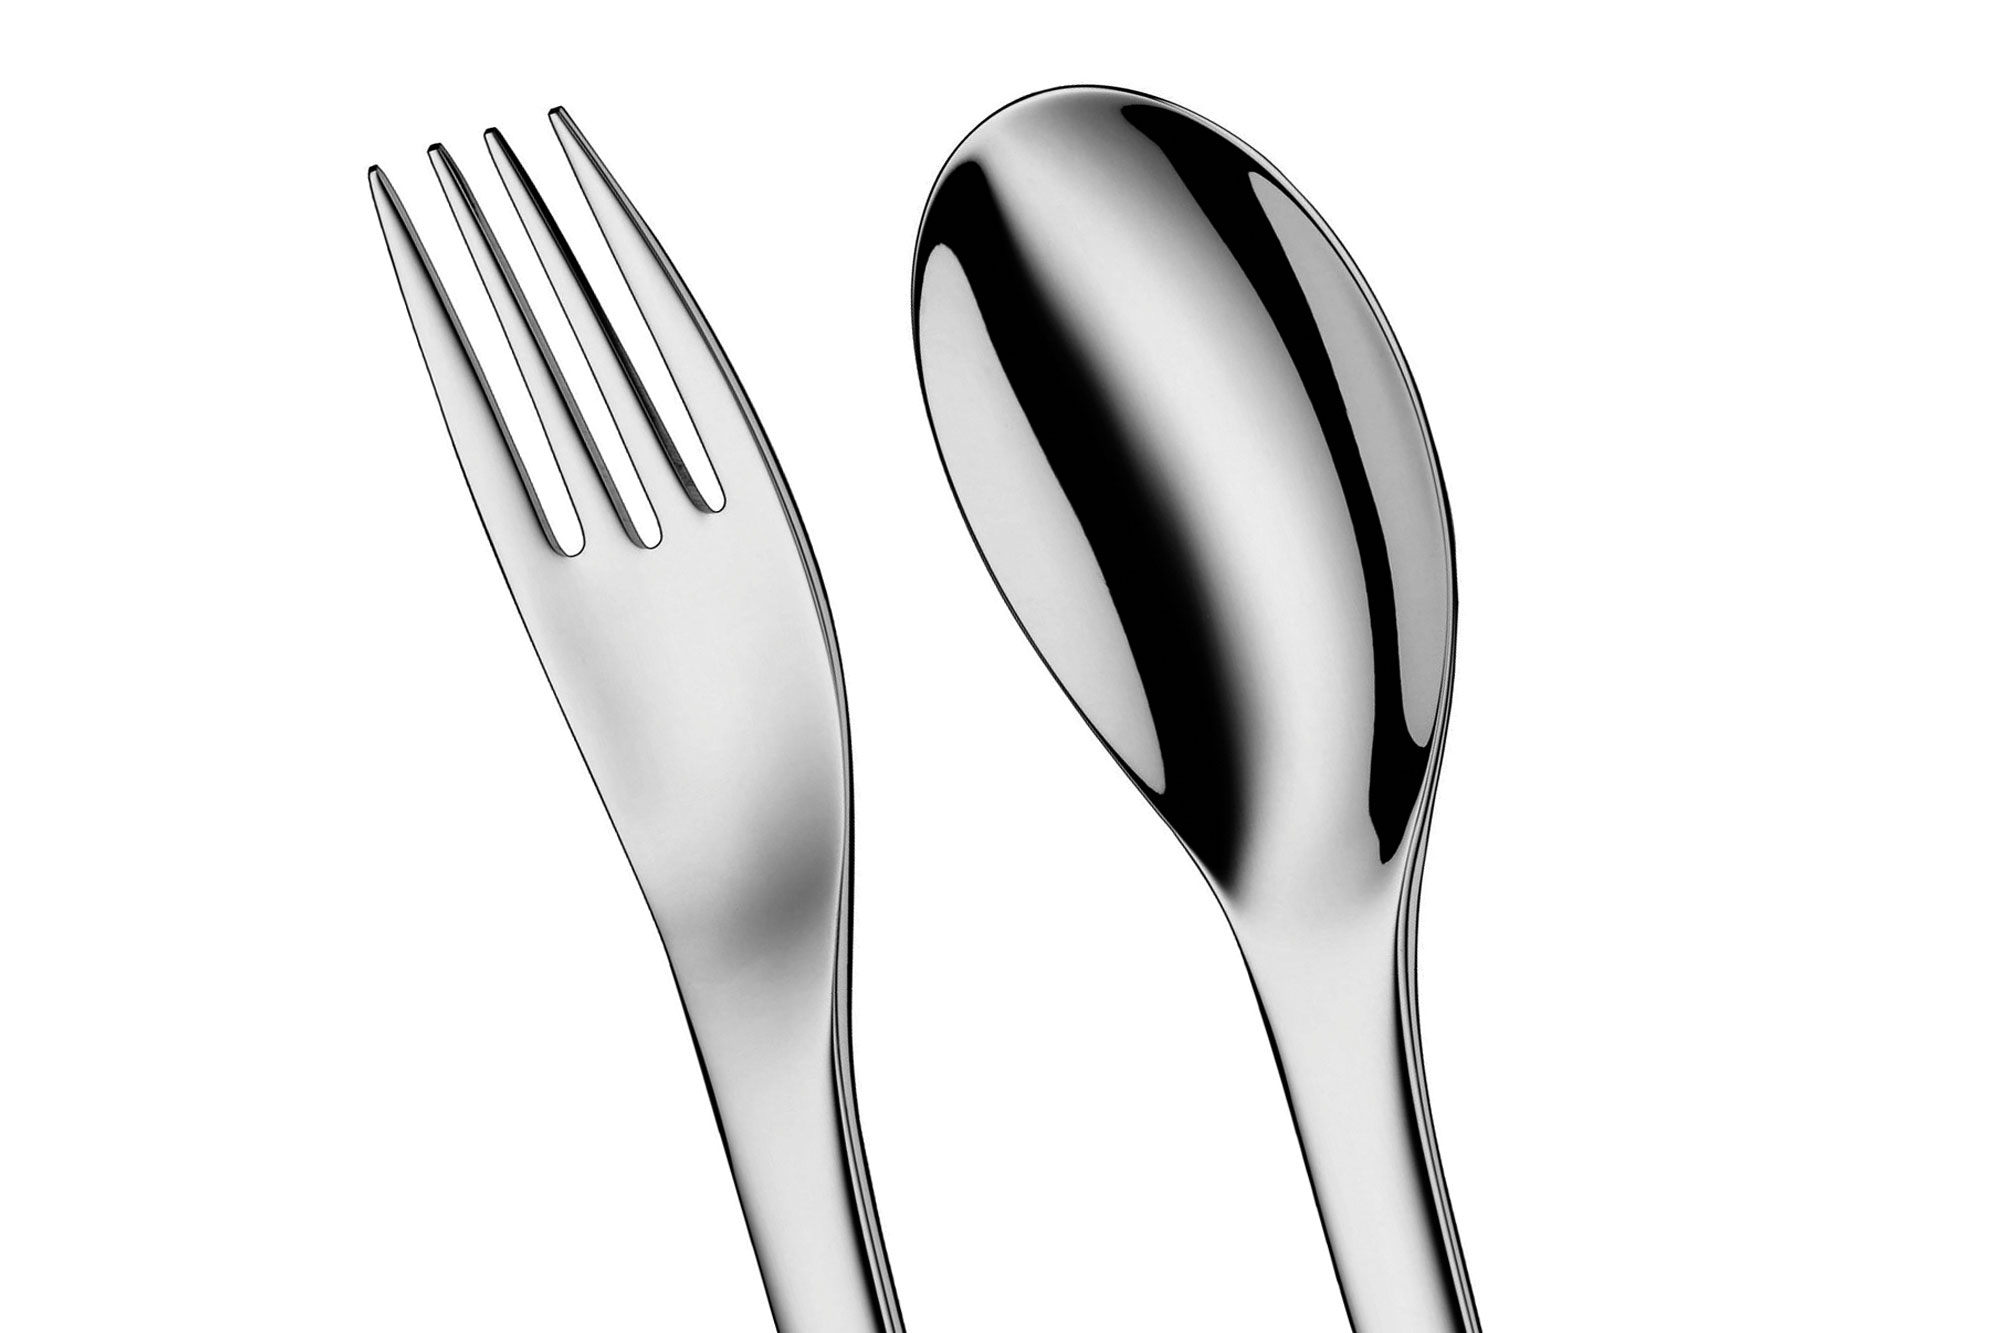 Wmf Nordic Stainless Steel Flatware Set 30 Piece